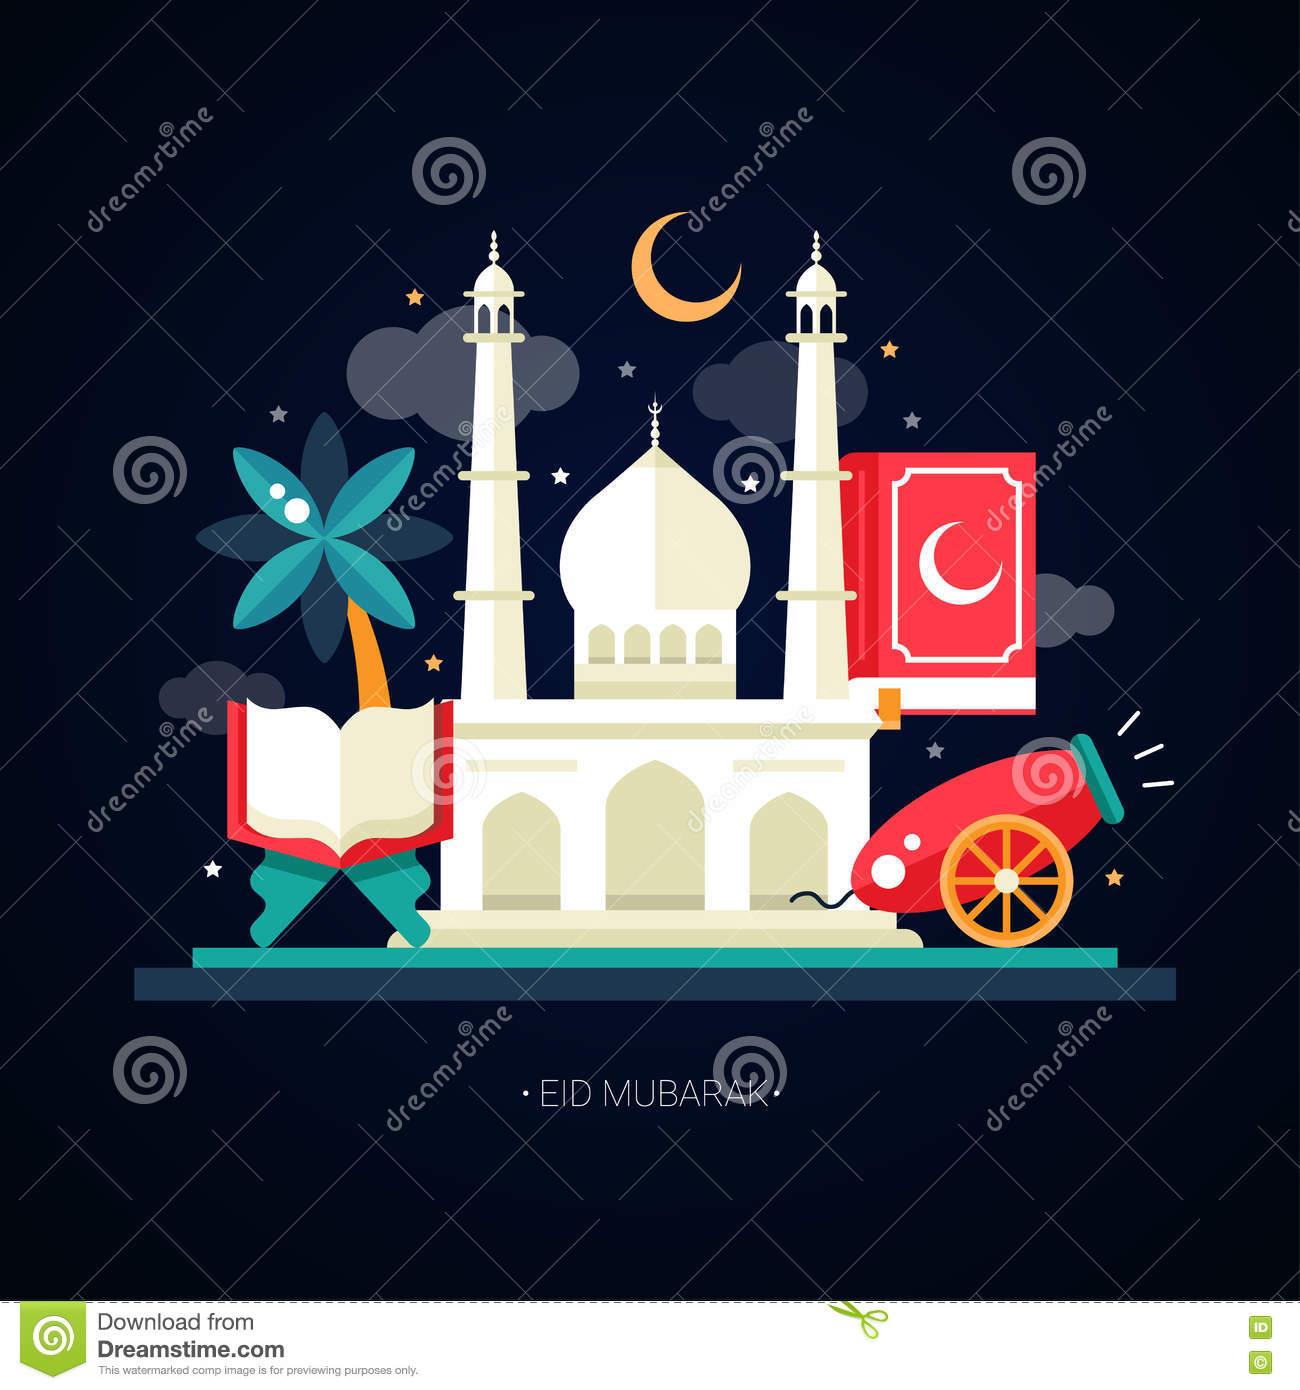 postcard template islamic culture icons stock vector image postcard template islamic culture icons royalty stock image